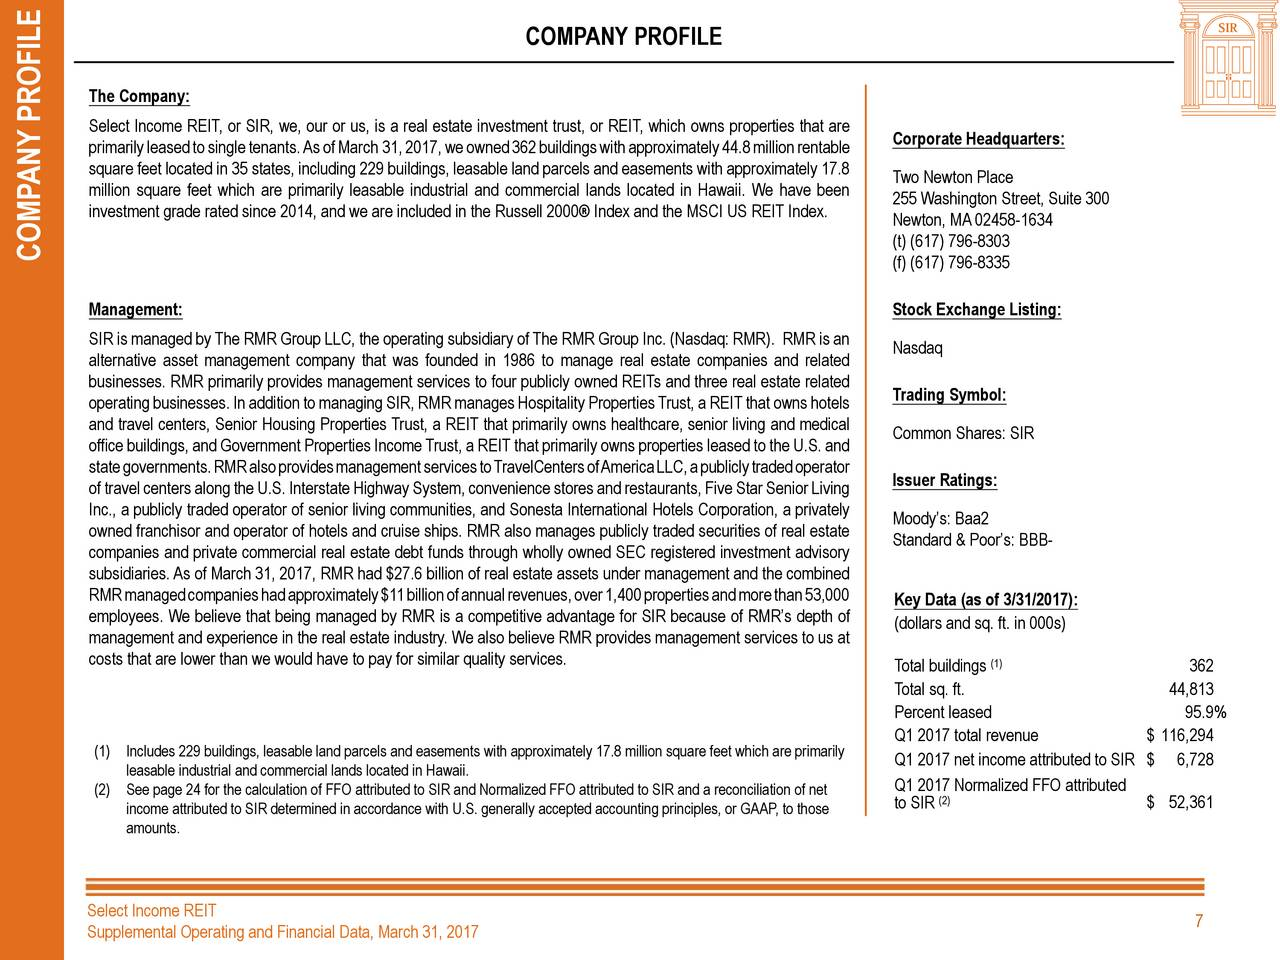 select one of the company profiles